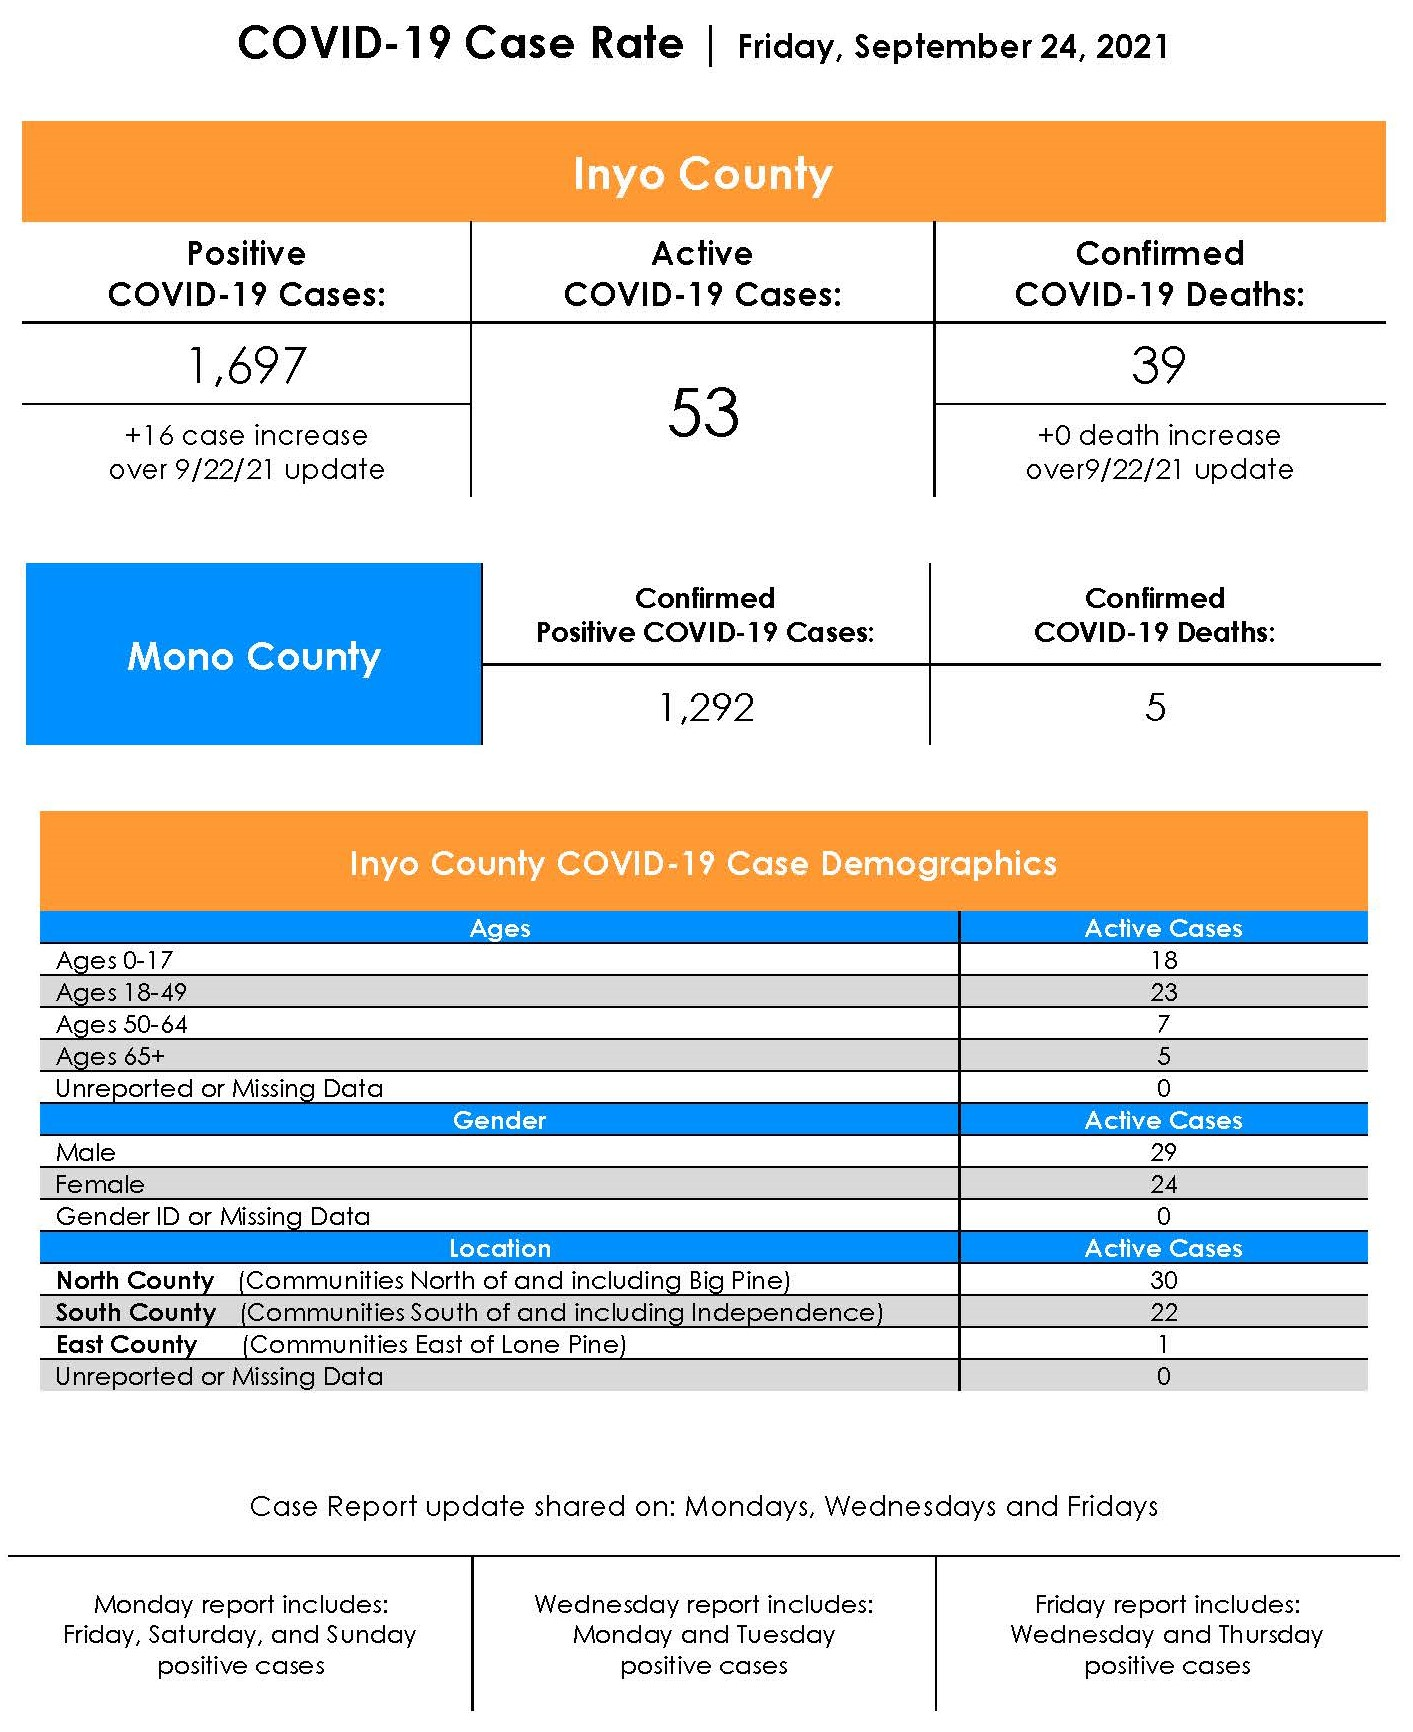 Inyo County COVID-19 Case Rate as of September 24th 2021